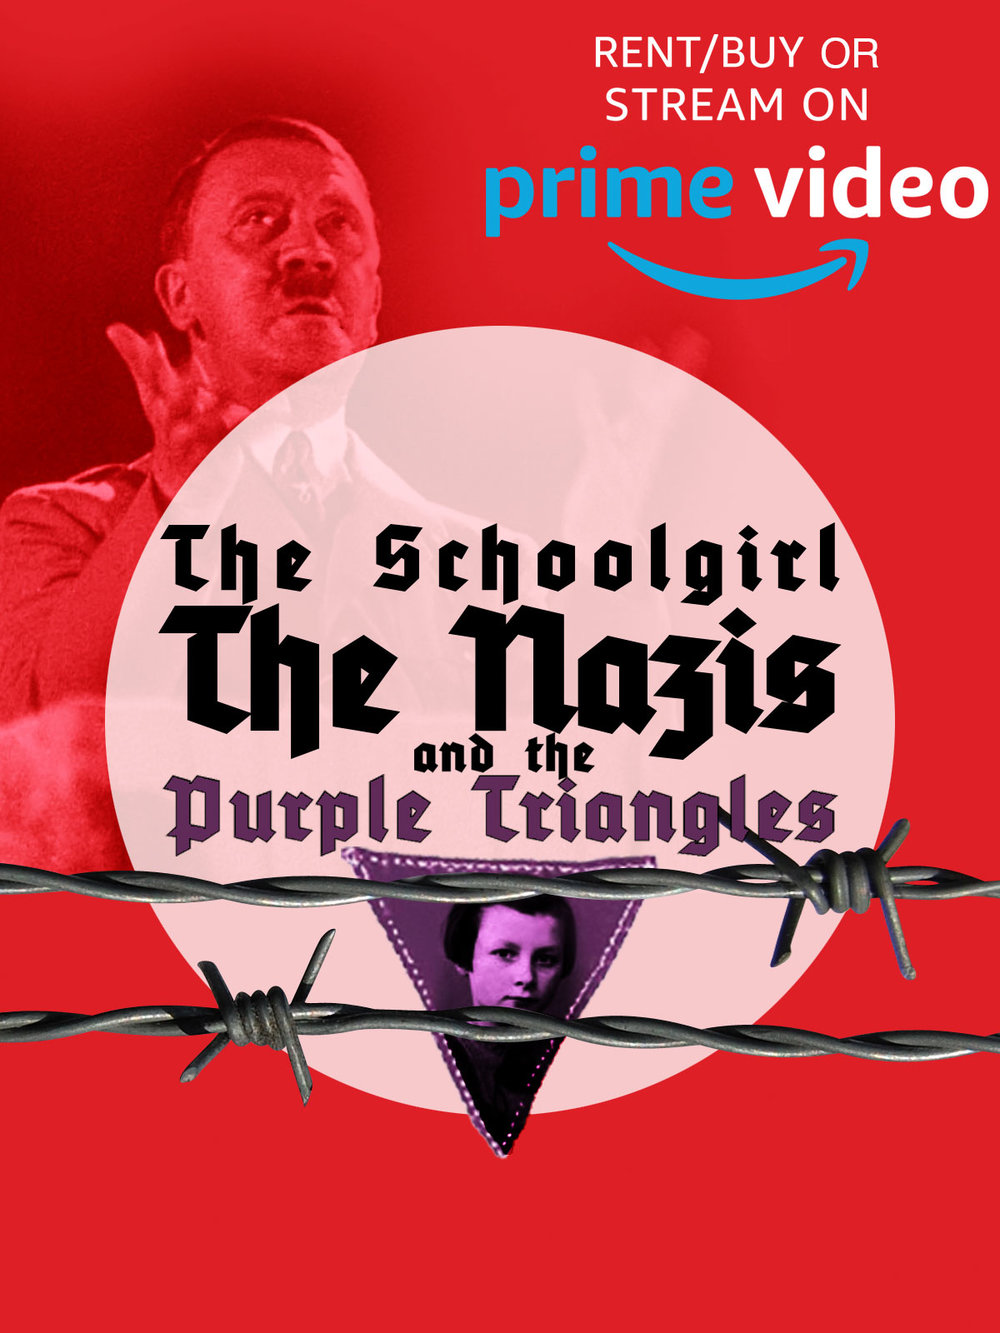 Stream on Prime Video UK - The Schoolgirl The Nazis And The Purple Triangles